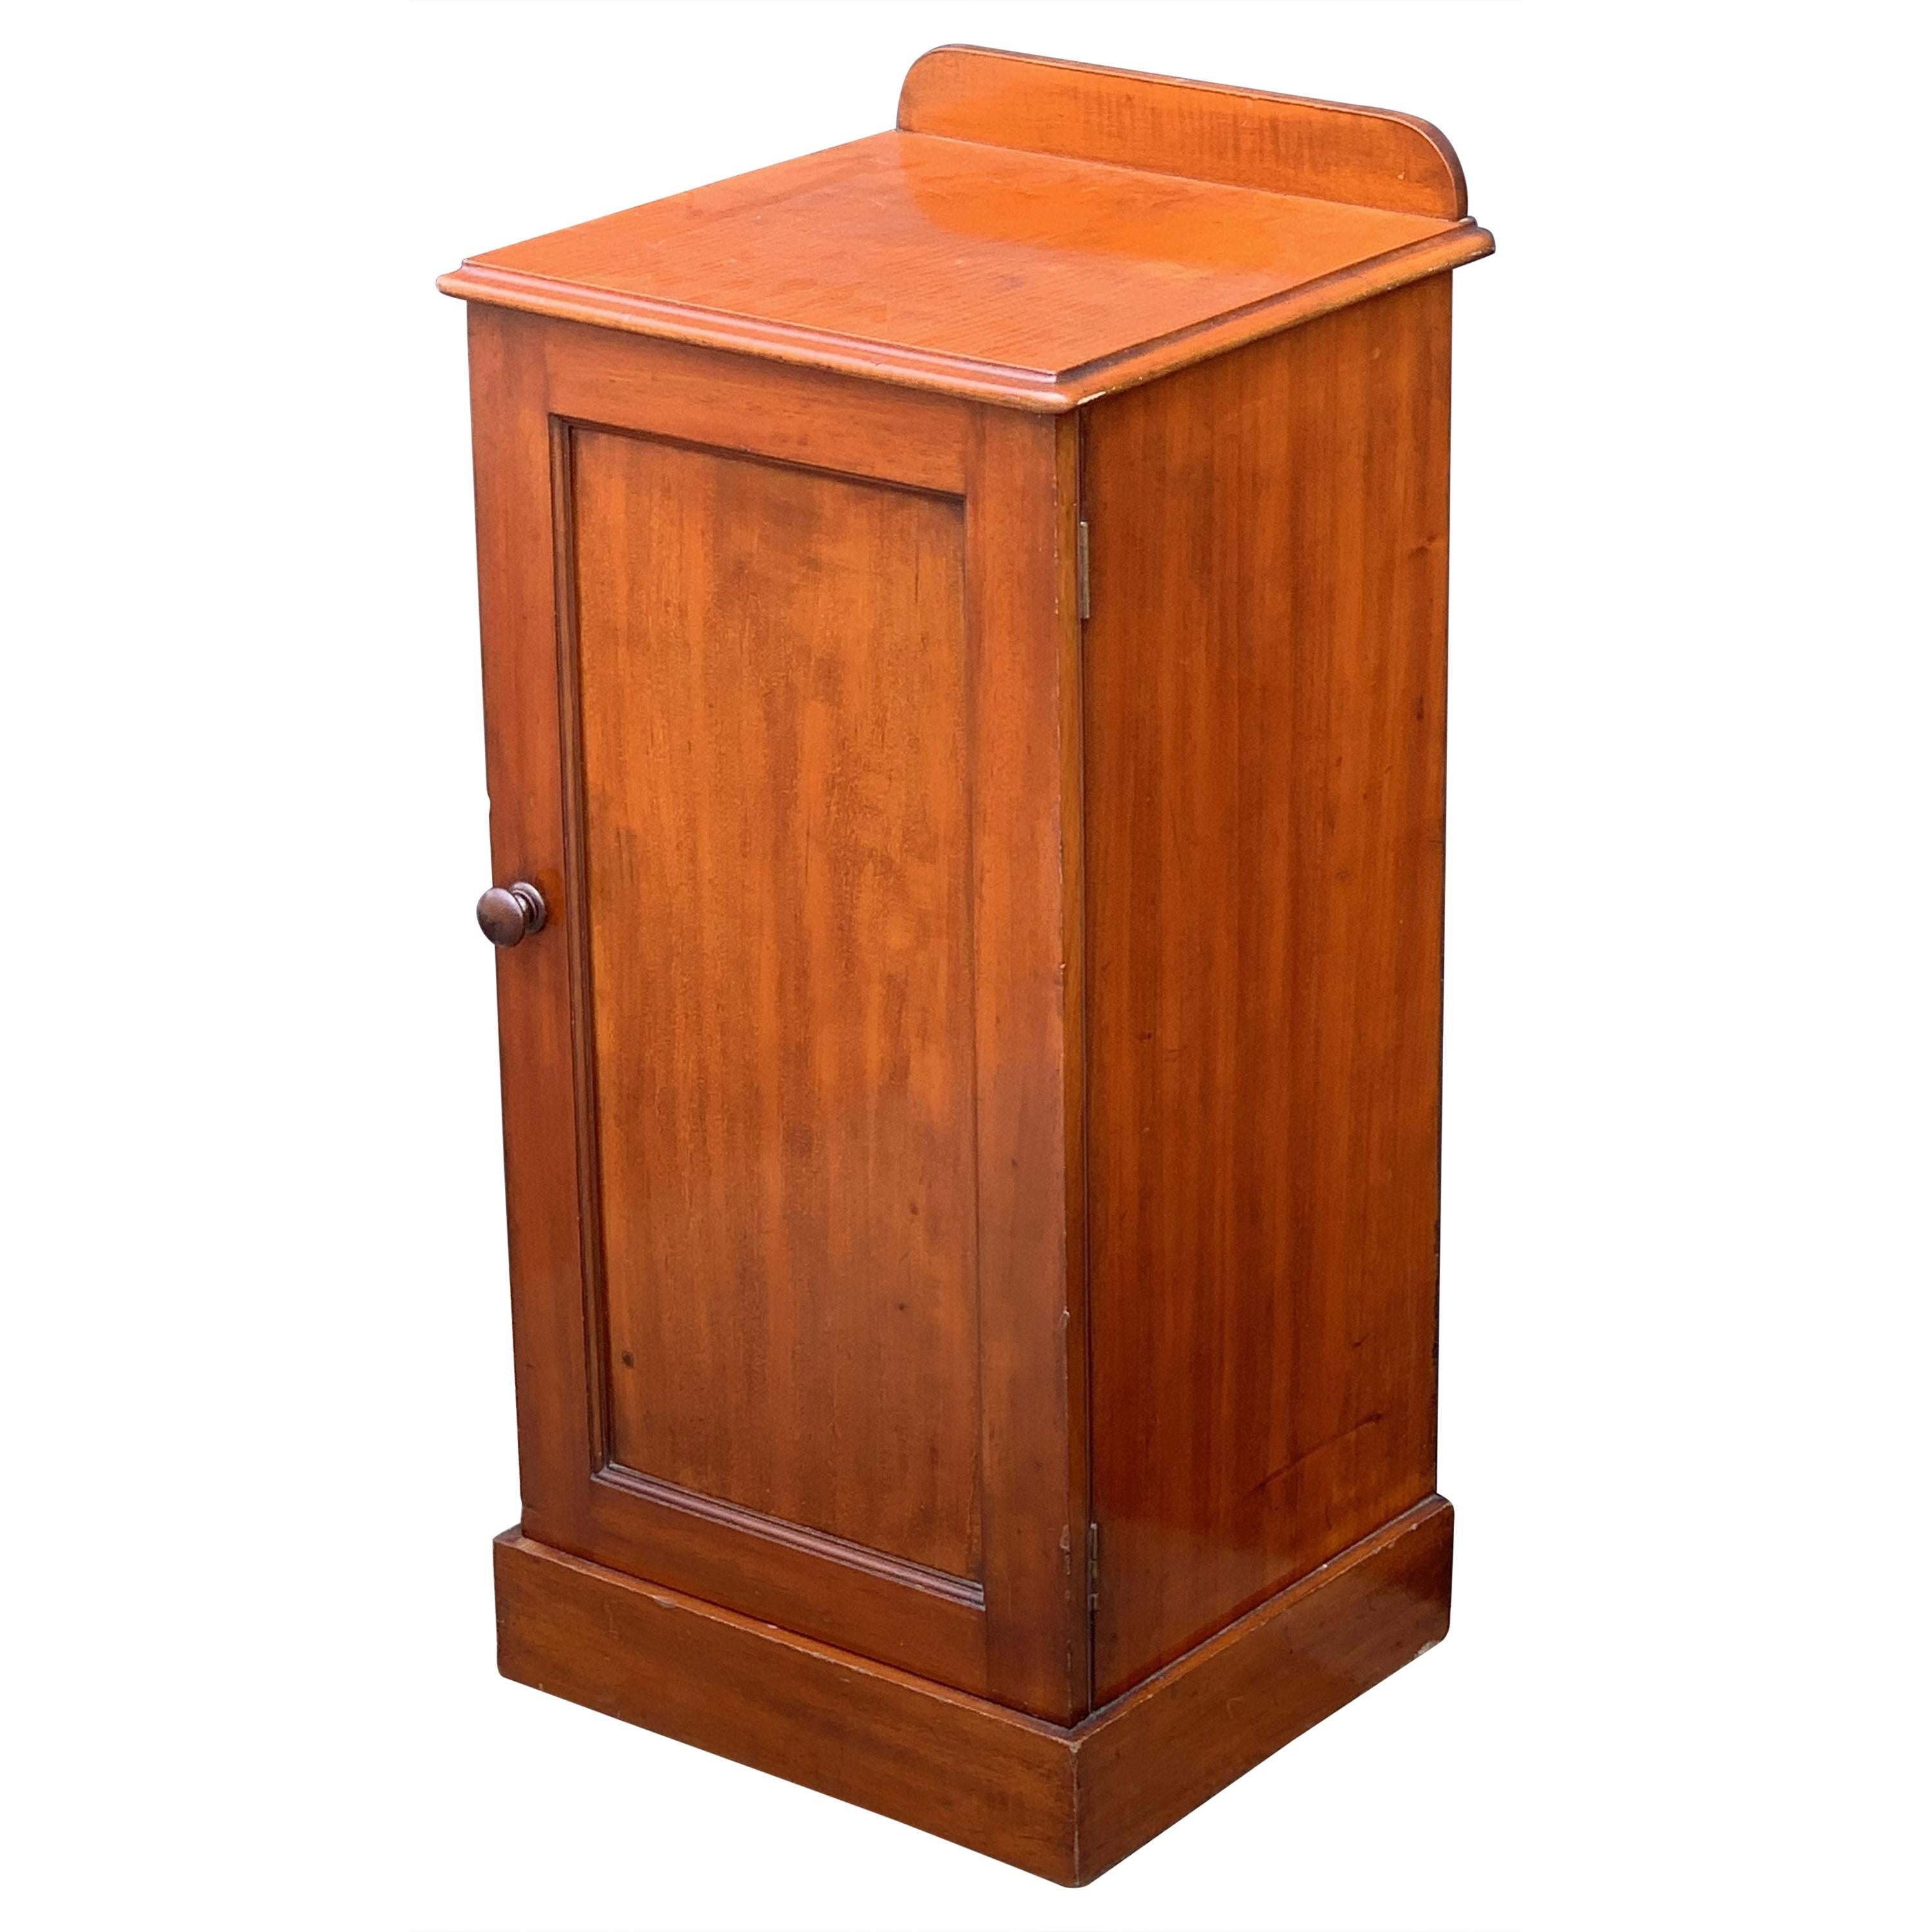 English Nightstand or Bedside Table of Mahogany